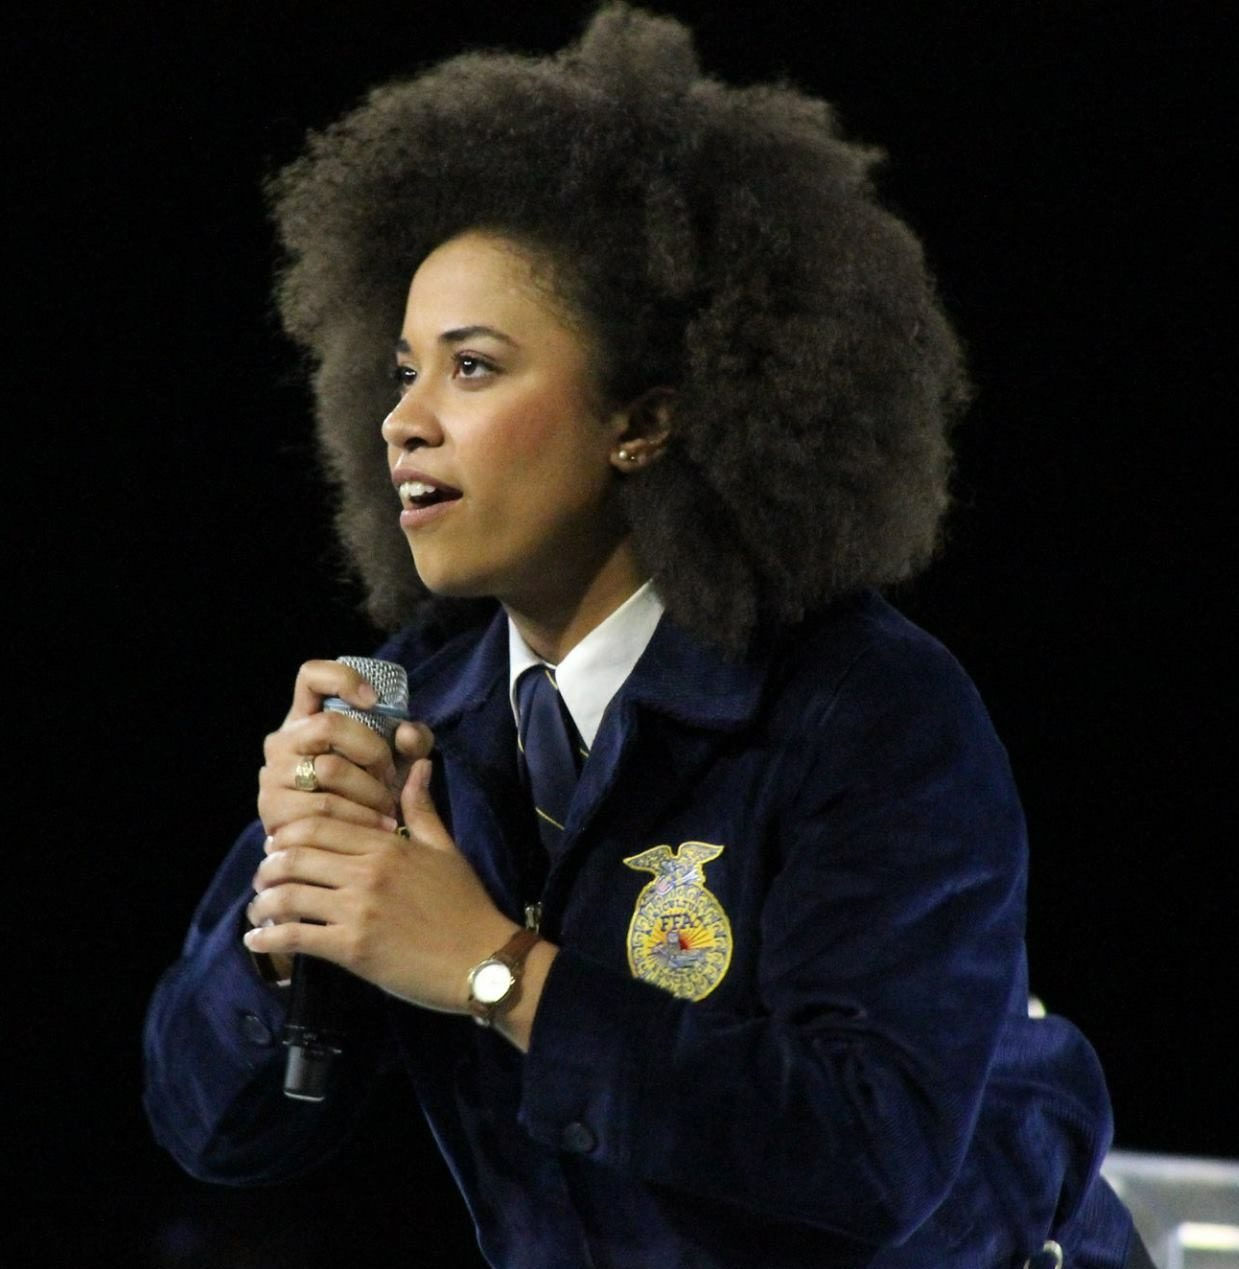 Breanna Holbert, President, National FFA Organization